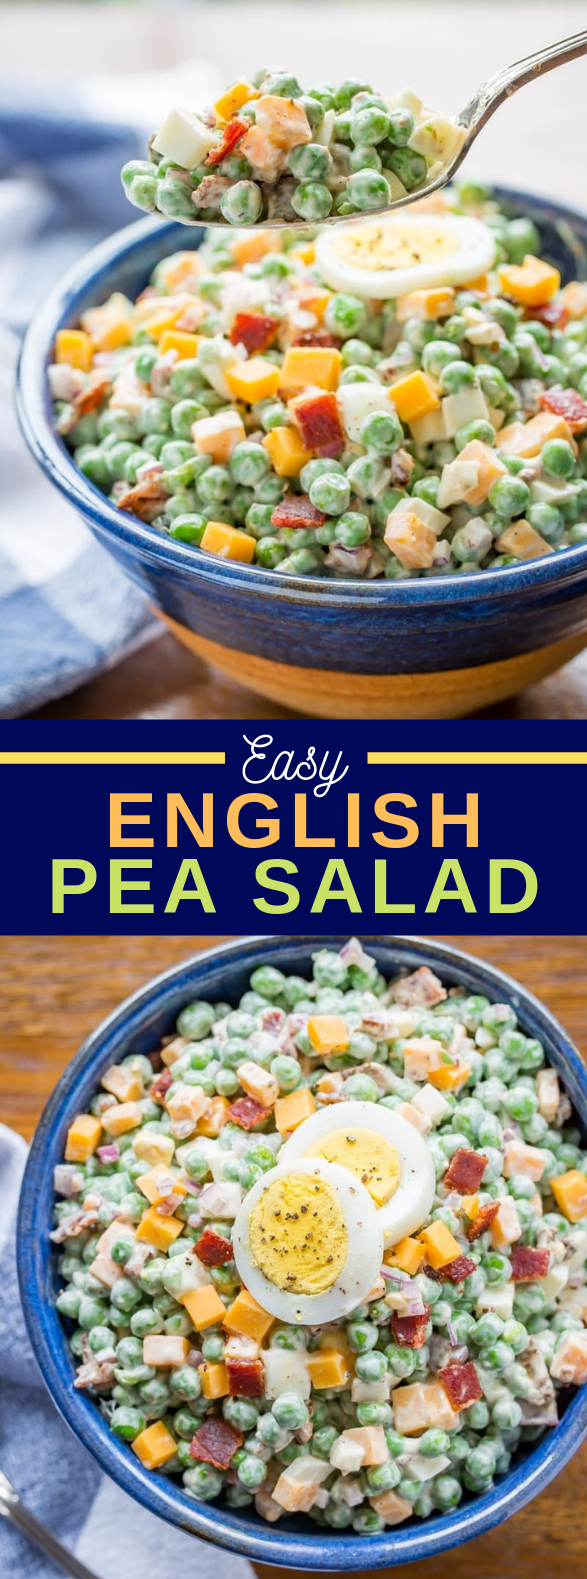 Easy English Pea Salad #vegetarian #easysalad